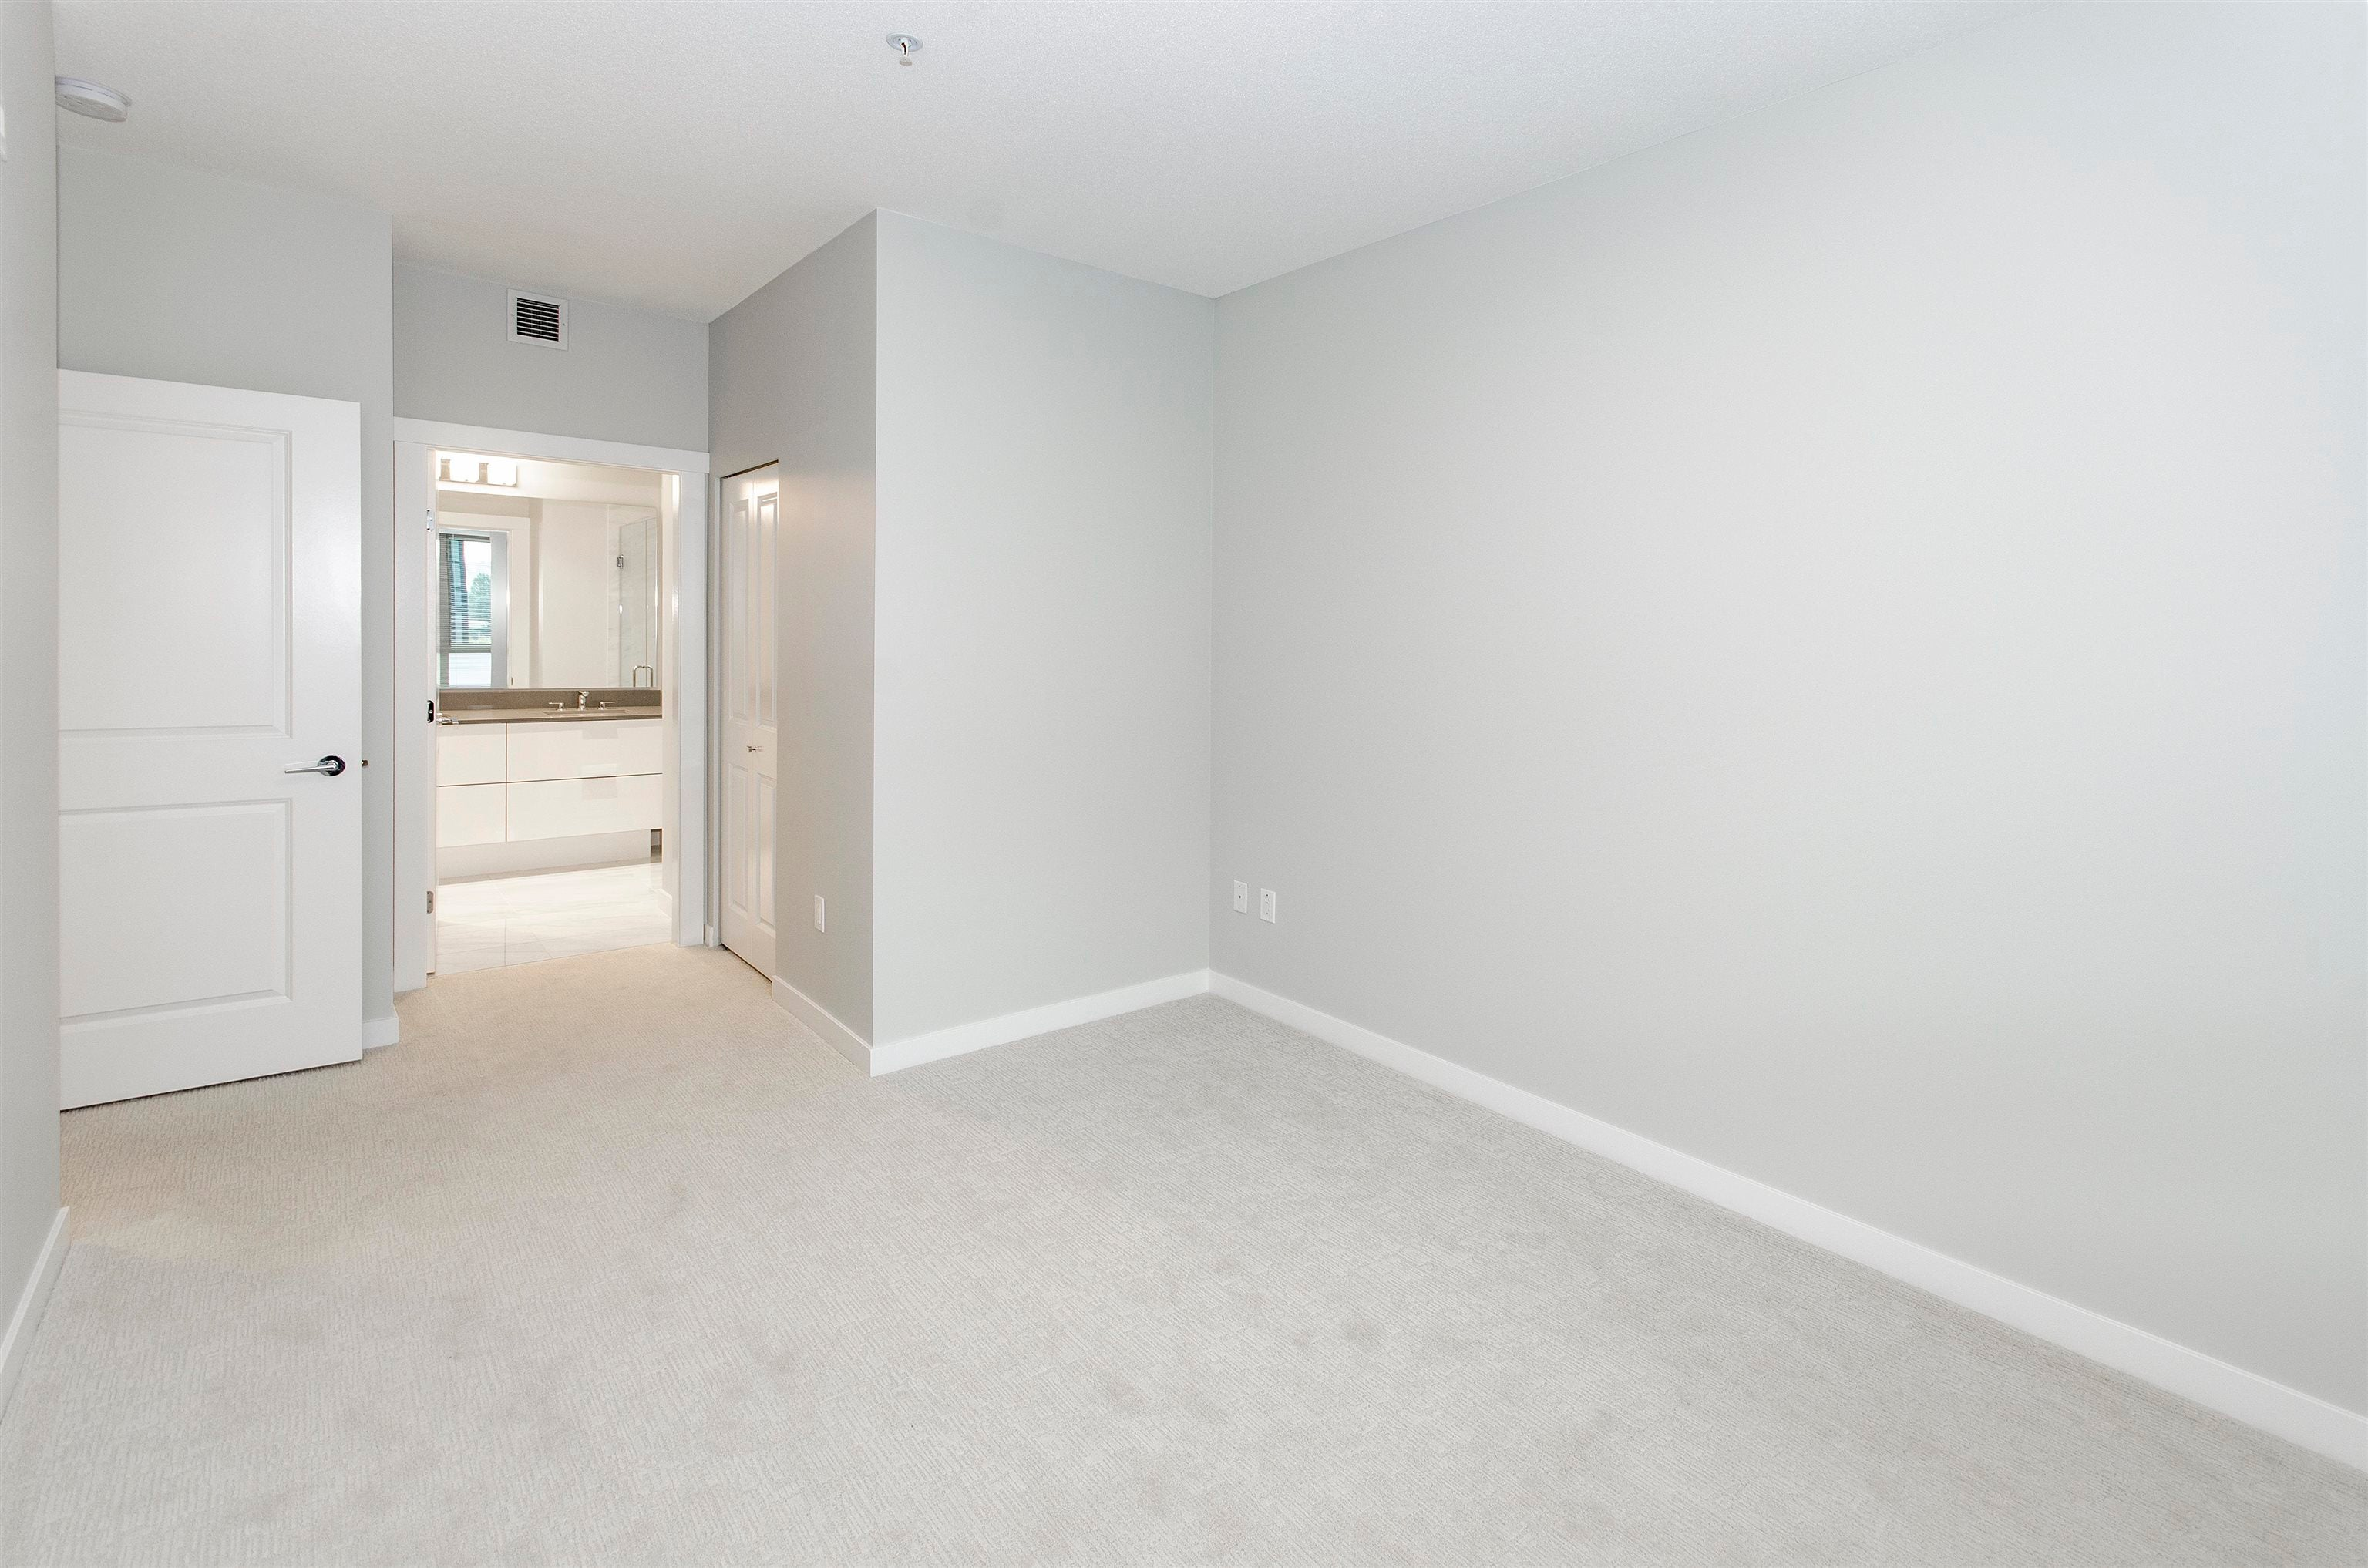 205 2651 LIBRARY LANE - Lynn Valley Apartment/Condo for sale, 2 Bedrooms (R2620222) - #14